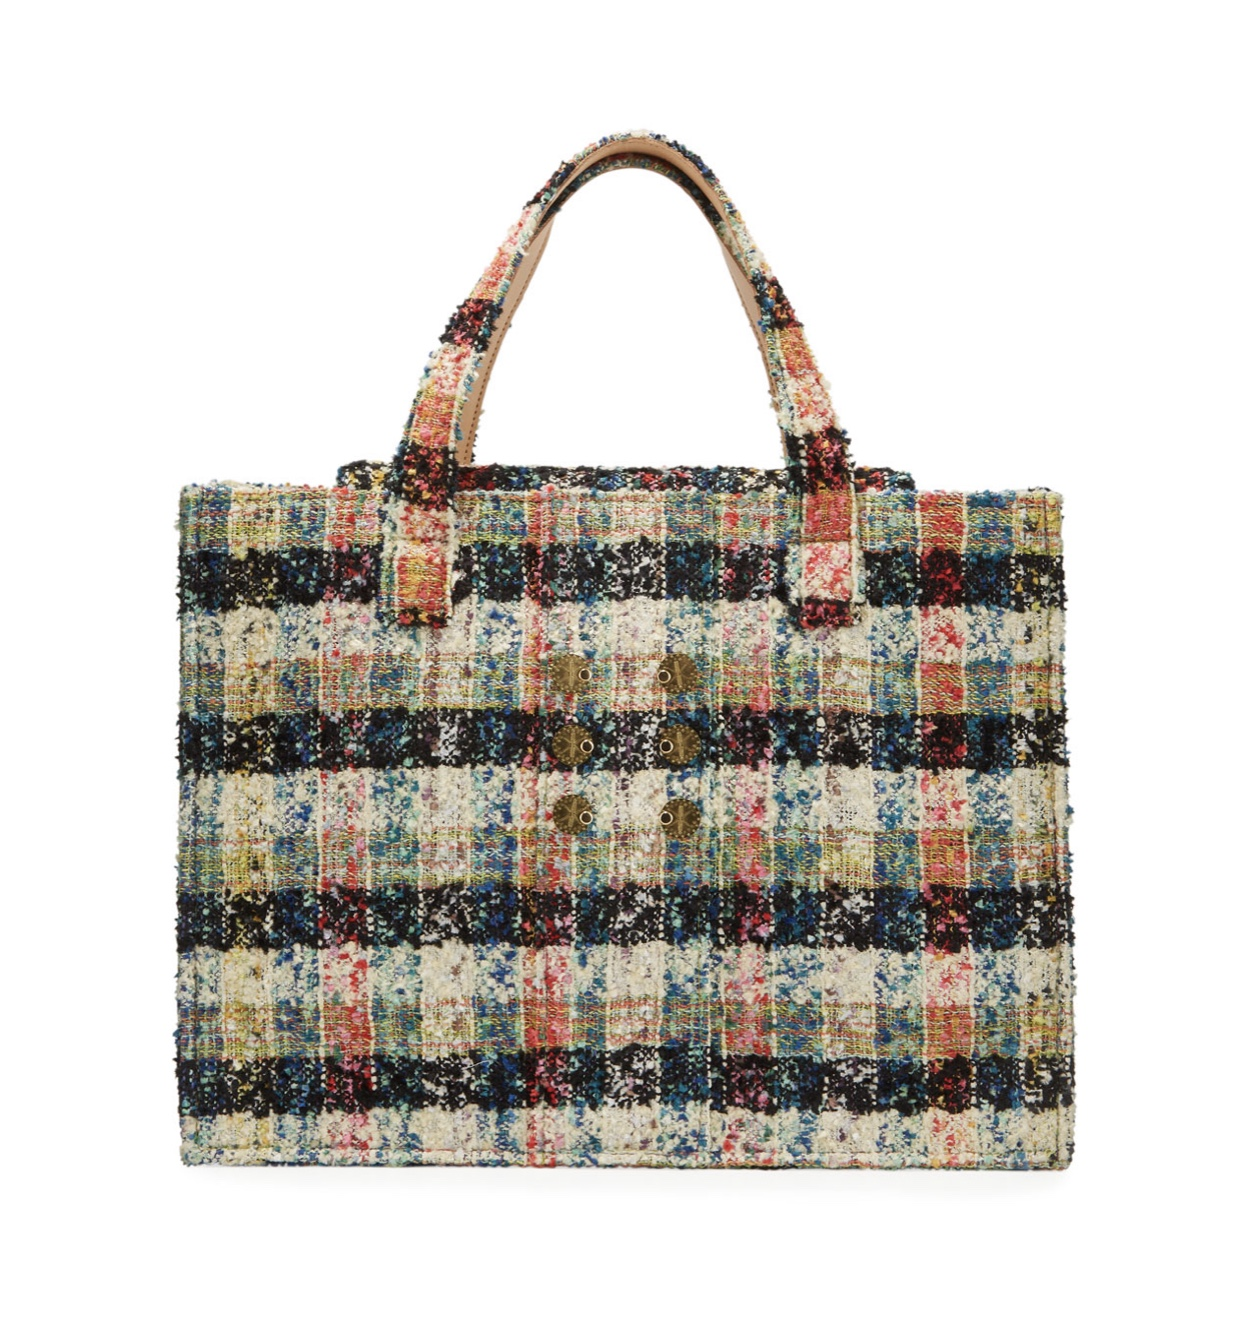 KOORELOO Tweed Book Tote Bag